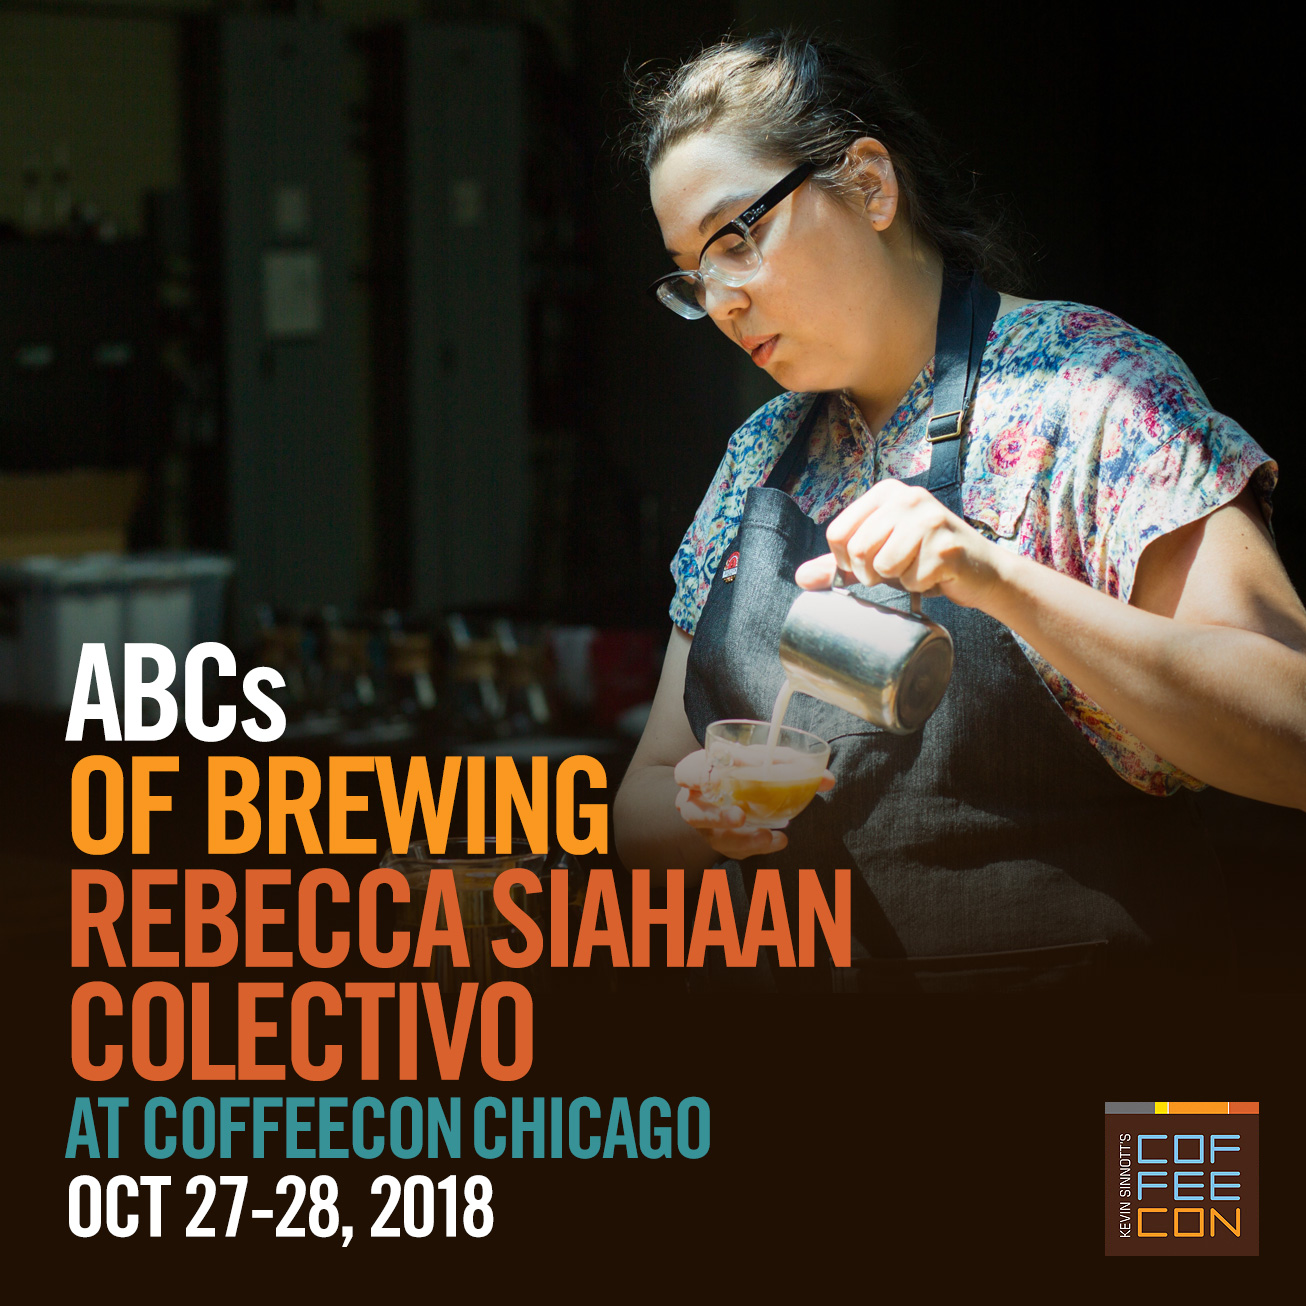 ABC's of Brewing with Colectivo Coffee at CoffeeConChicago 2018